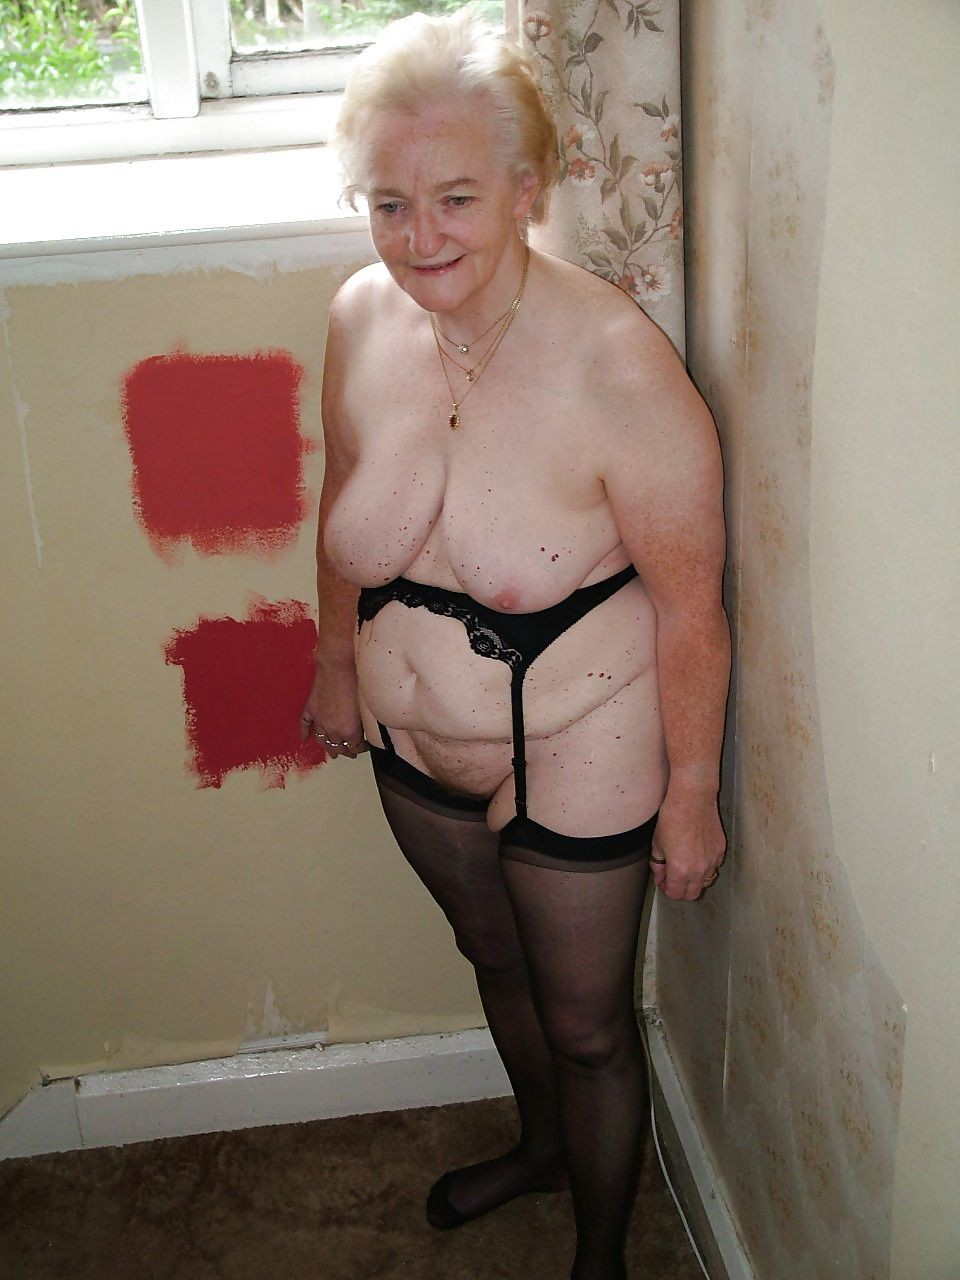 blonde hardcore porn rated x